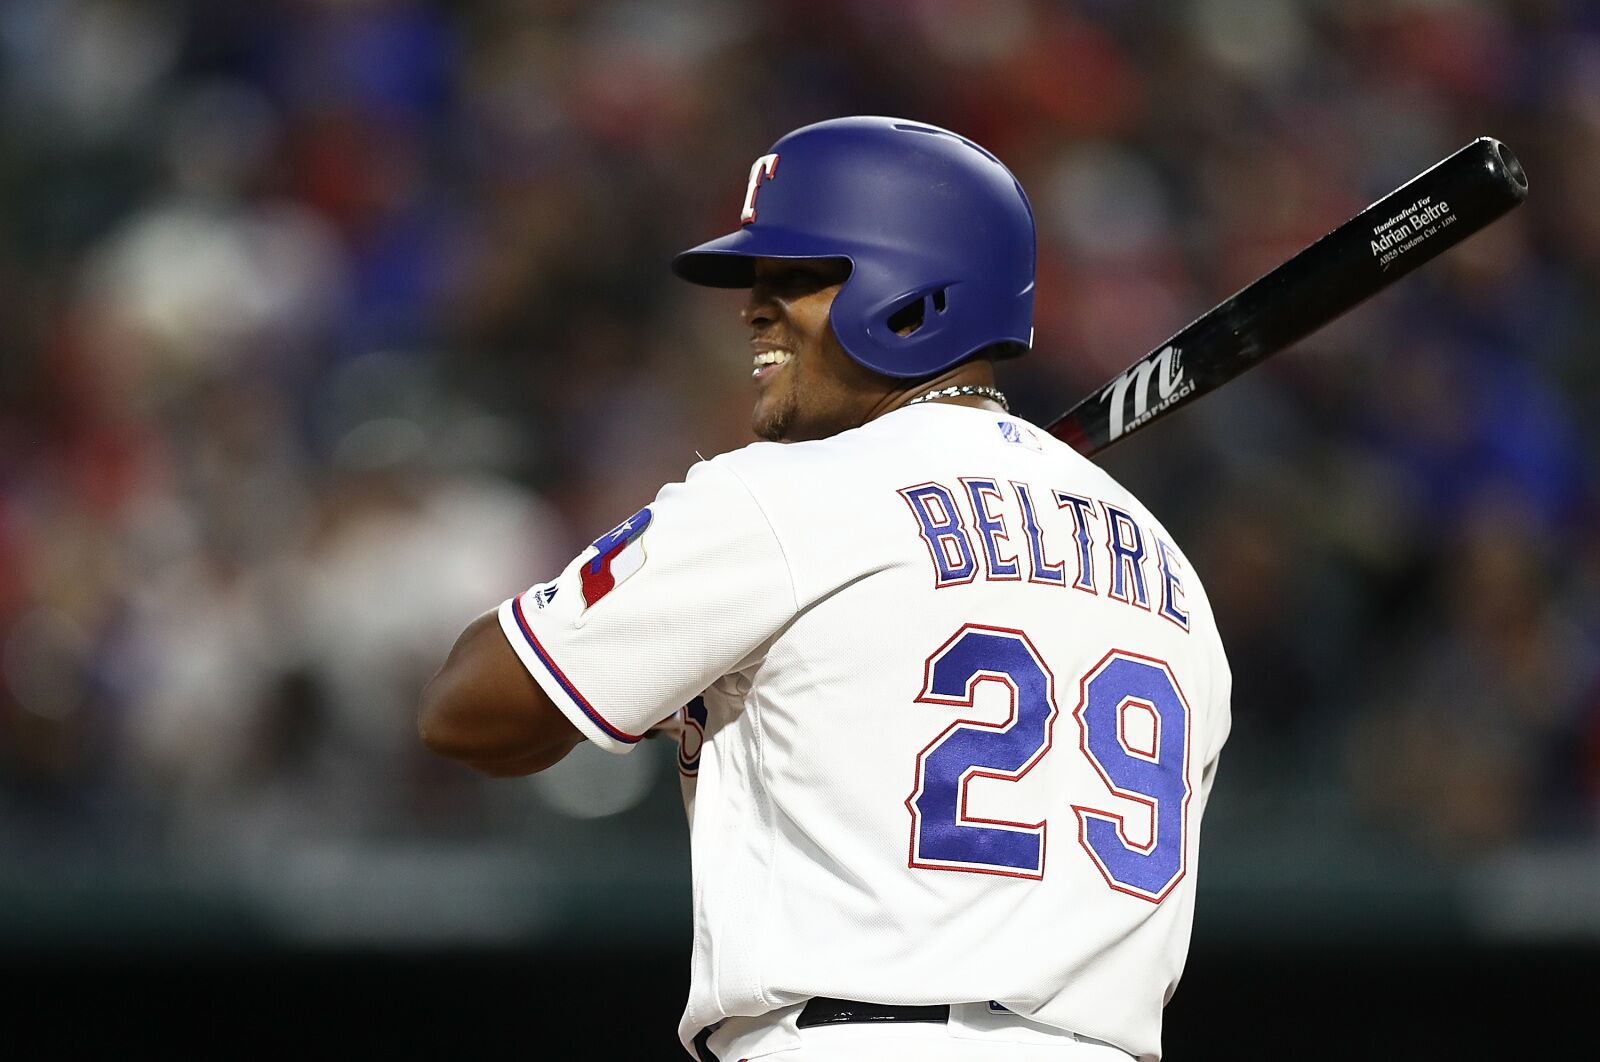 Texas Rangers taking no time to retire Adrian Beltre's number